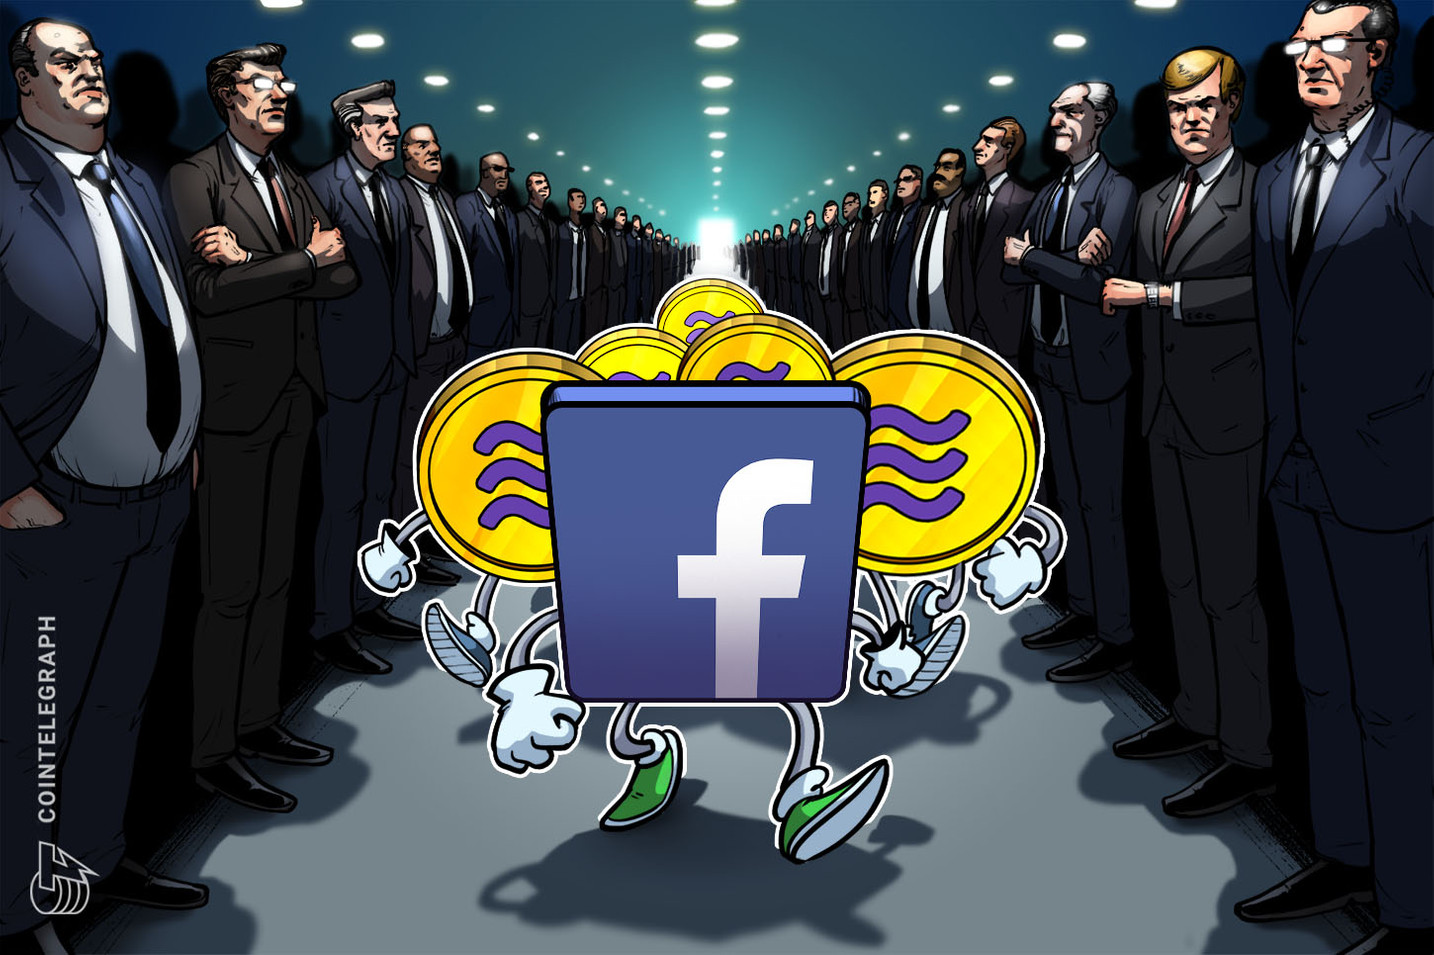 US Libra Hearings Day 1: Lawmakers Finding It Hard to Trust Facebook